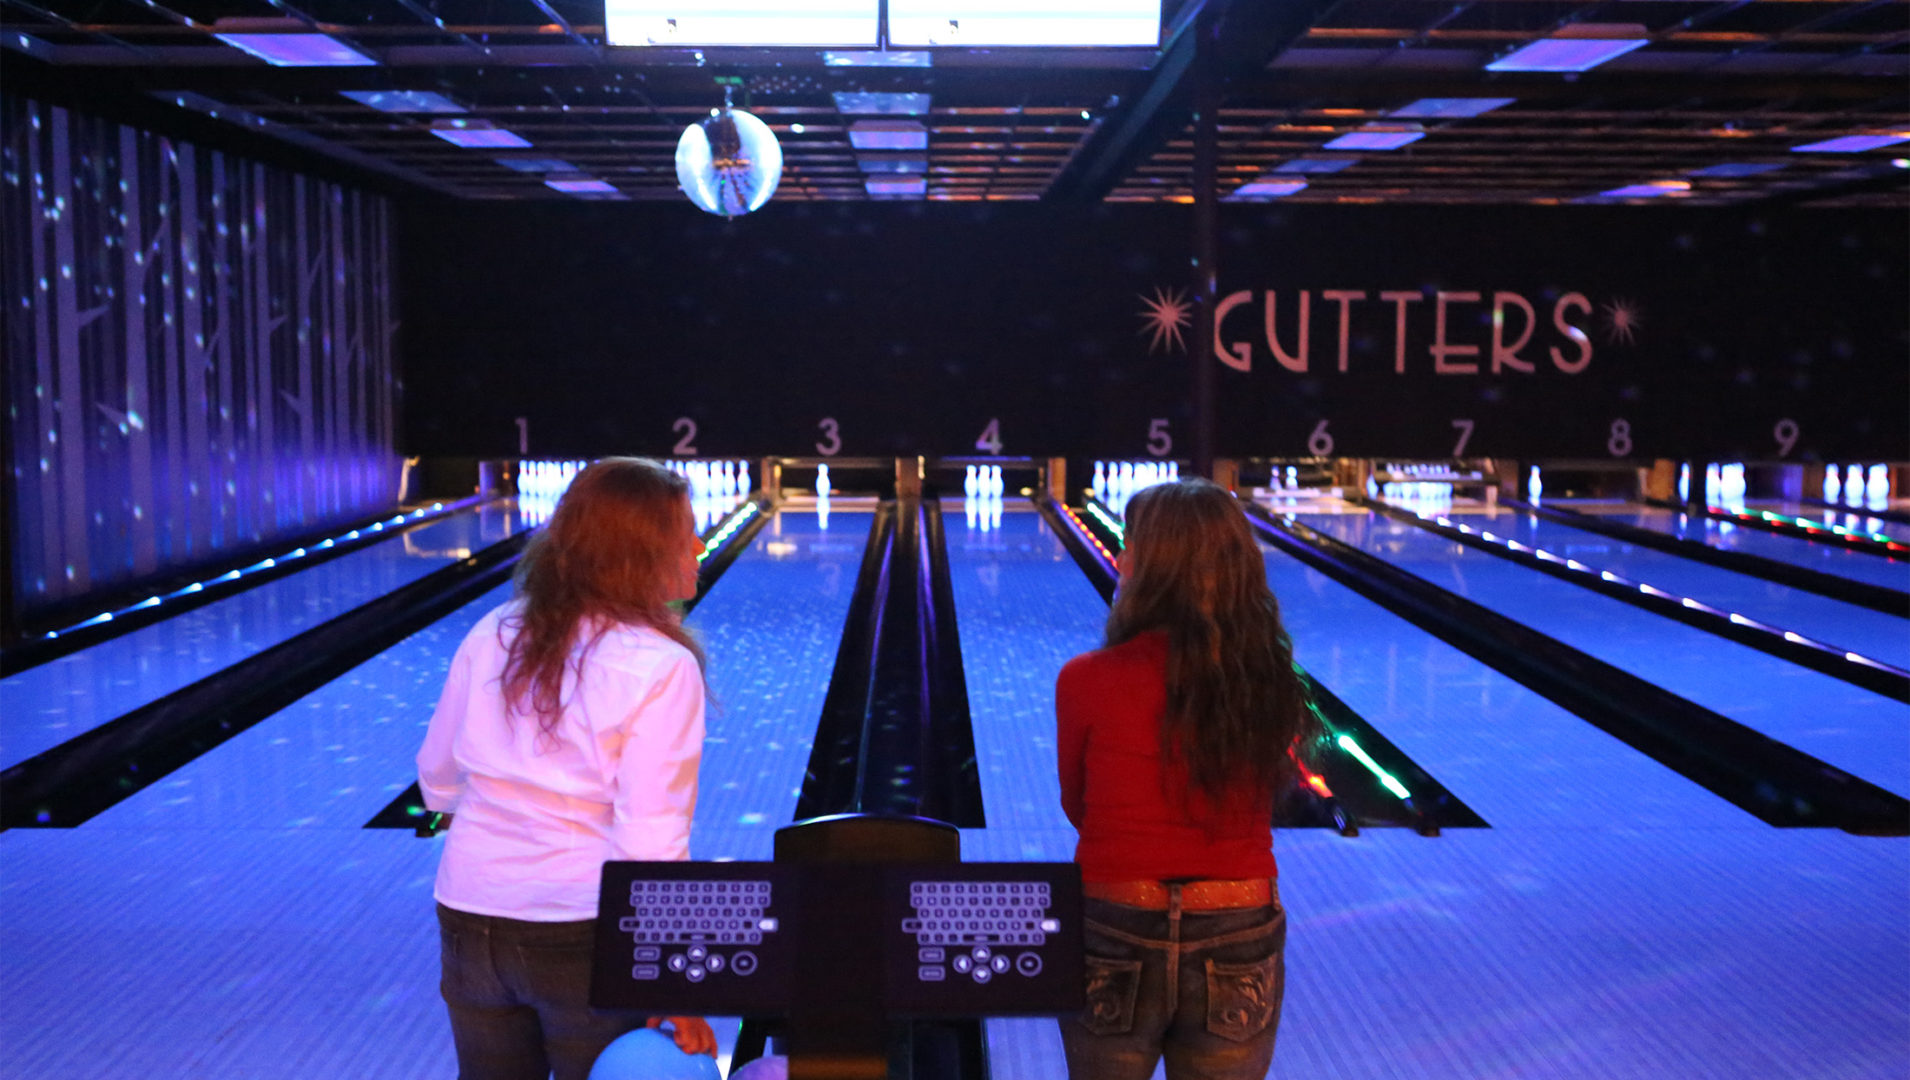 Home - Taos Gutters Bowling Alley